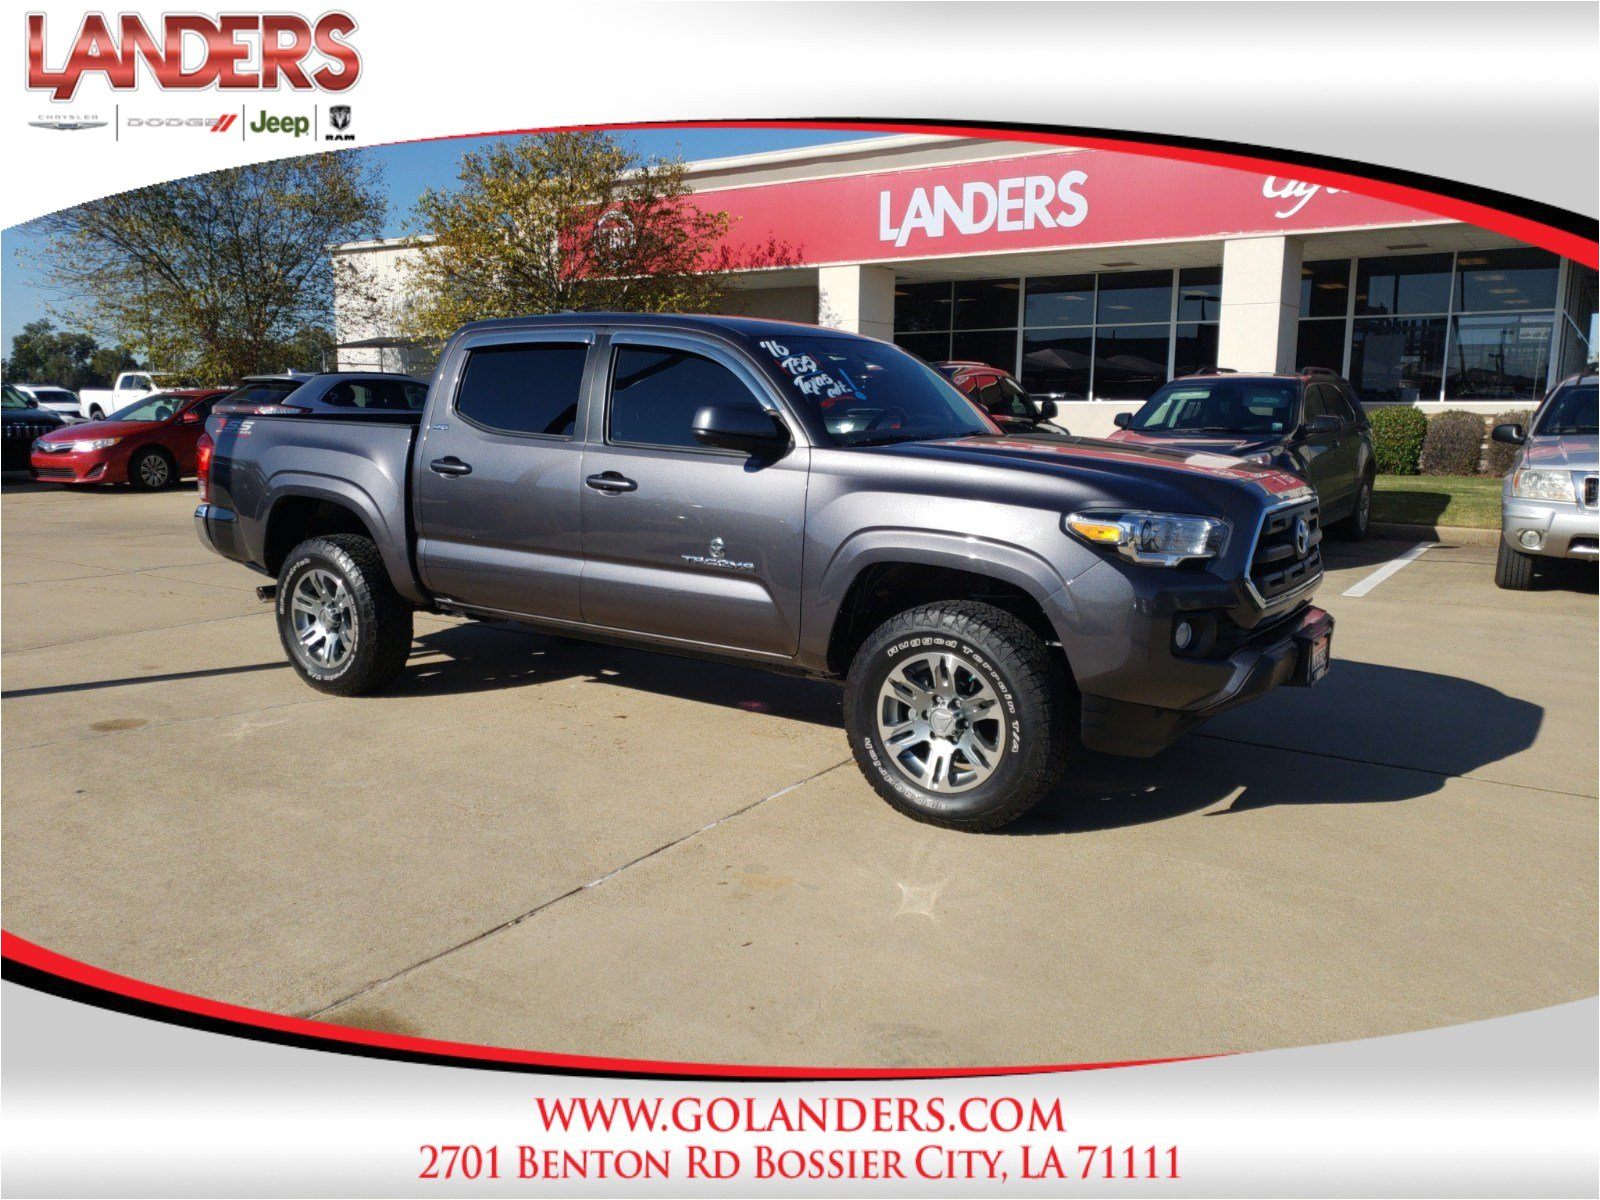 Fabric Stores In Shreveport Bossier City La Pre Owned 2016 toyota Tacoma Trd Off Road Crew Cab Pickup In Bossier